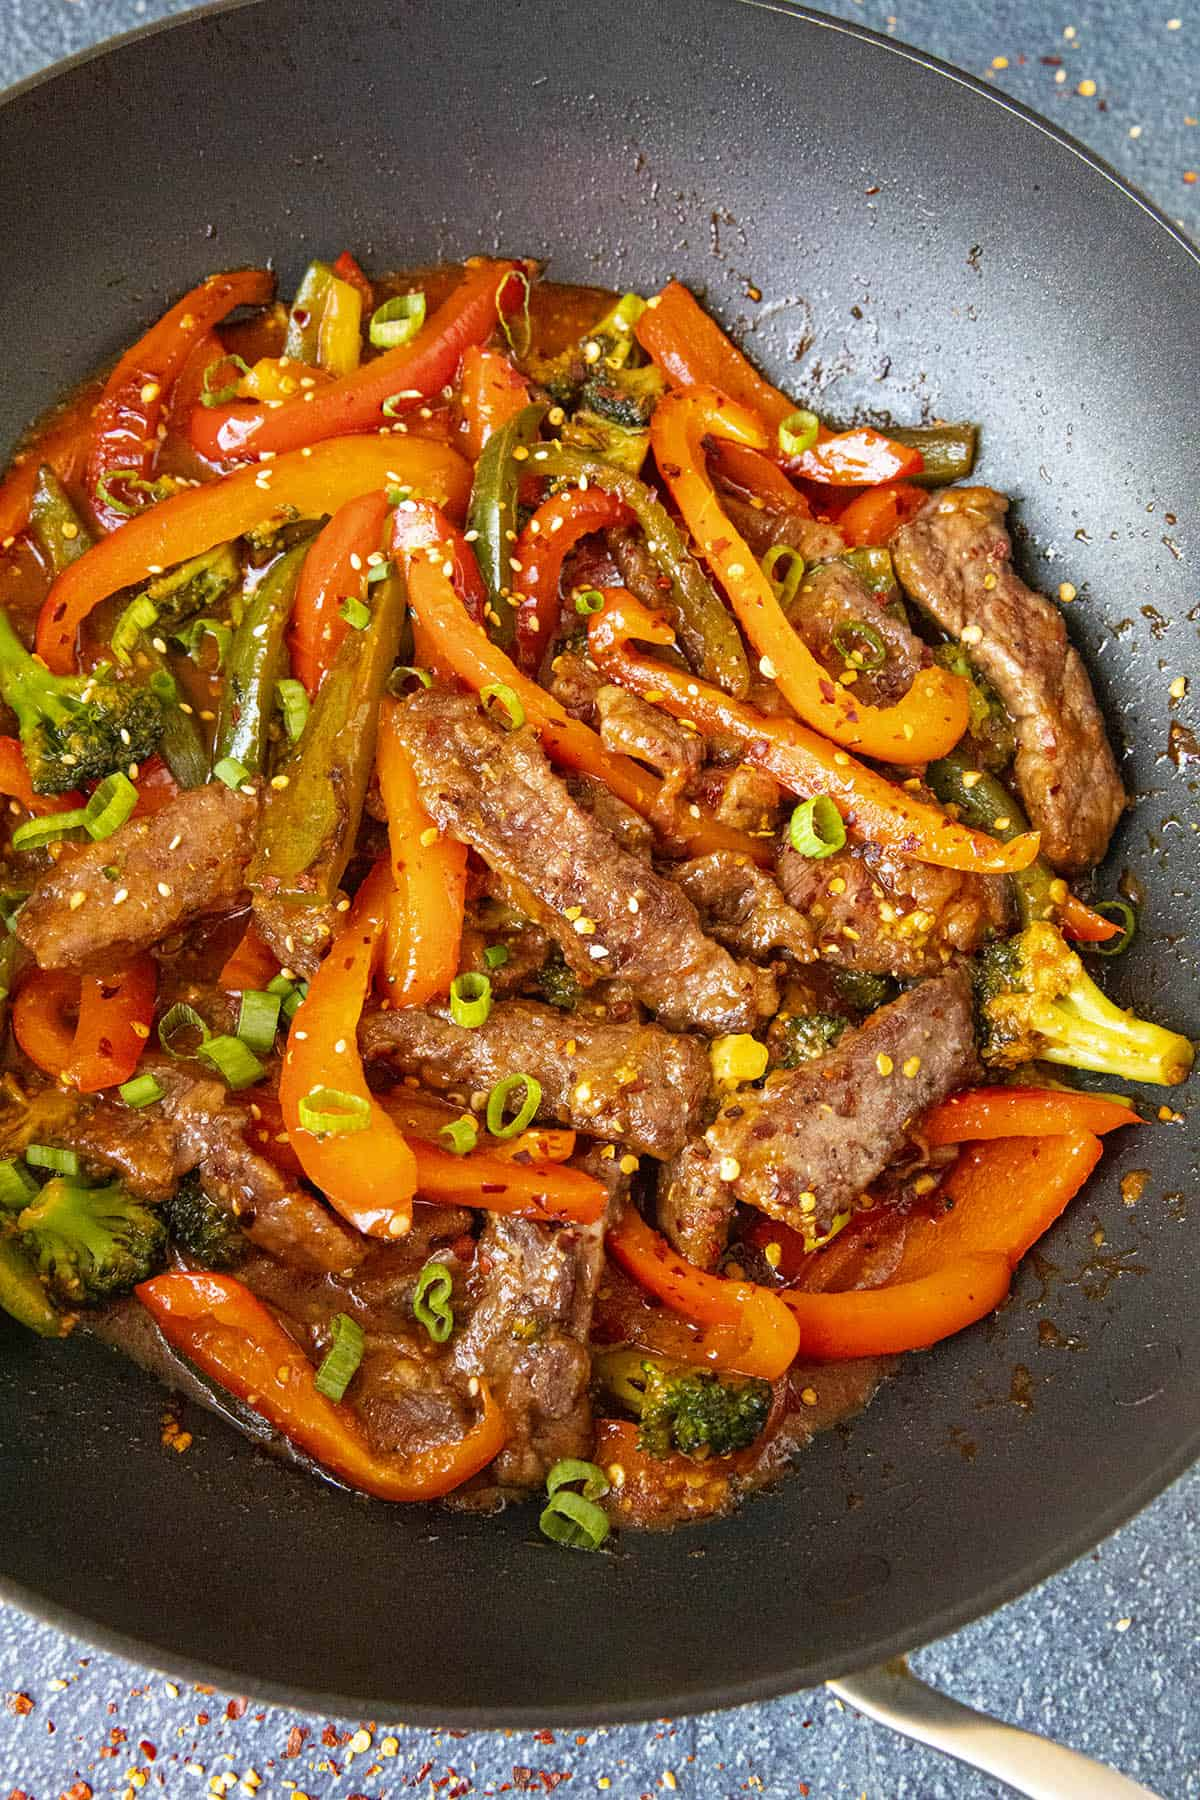 Spicy Beef Stir Fry in a pan with peppers and broccoli